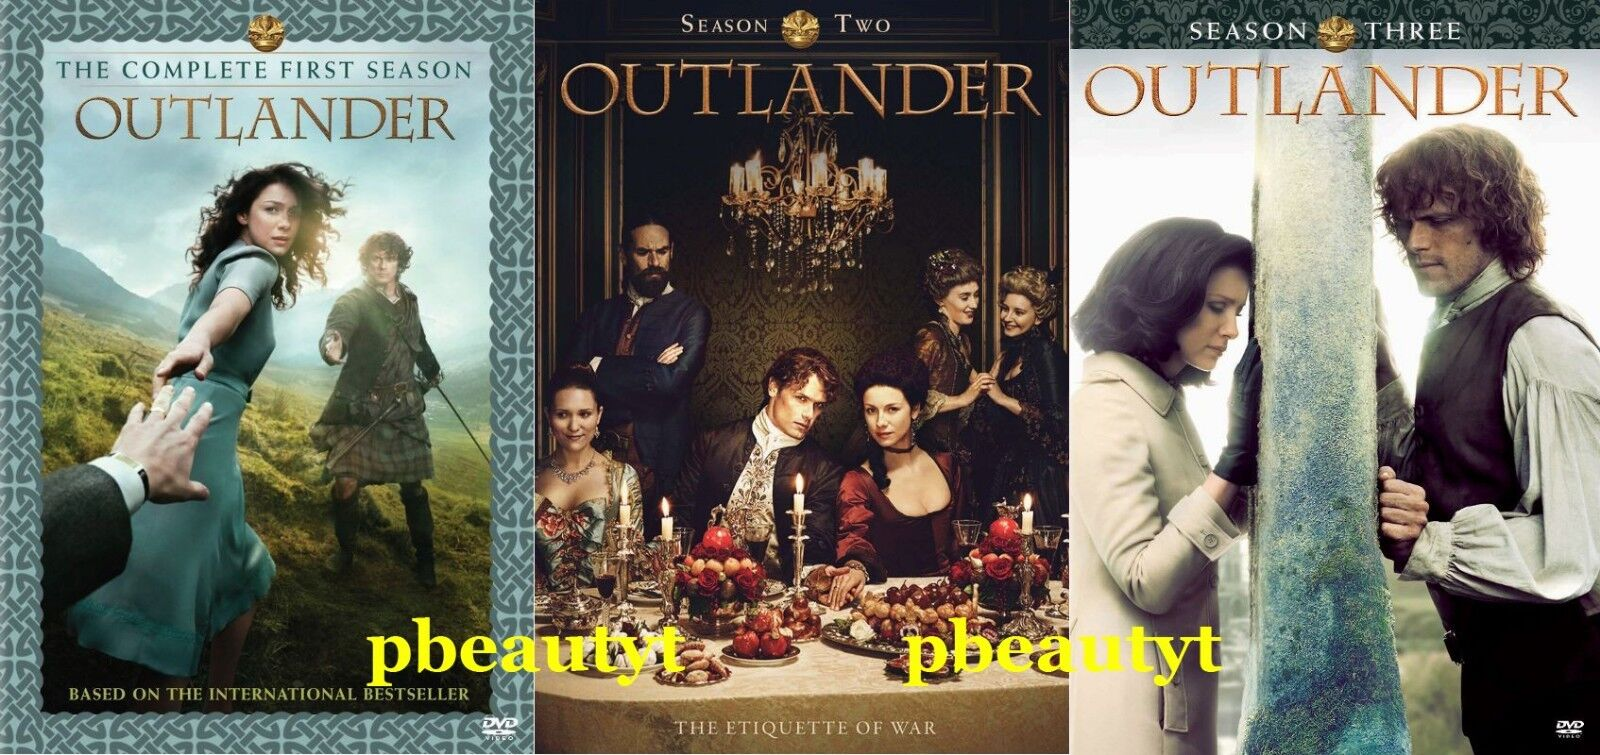 Outlander:The Complete Seasons 1-3 3 DVD Sets NEW Series Vol.1 2 First Second Th